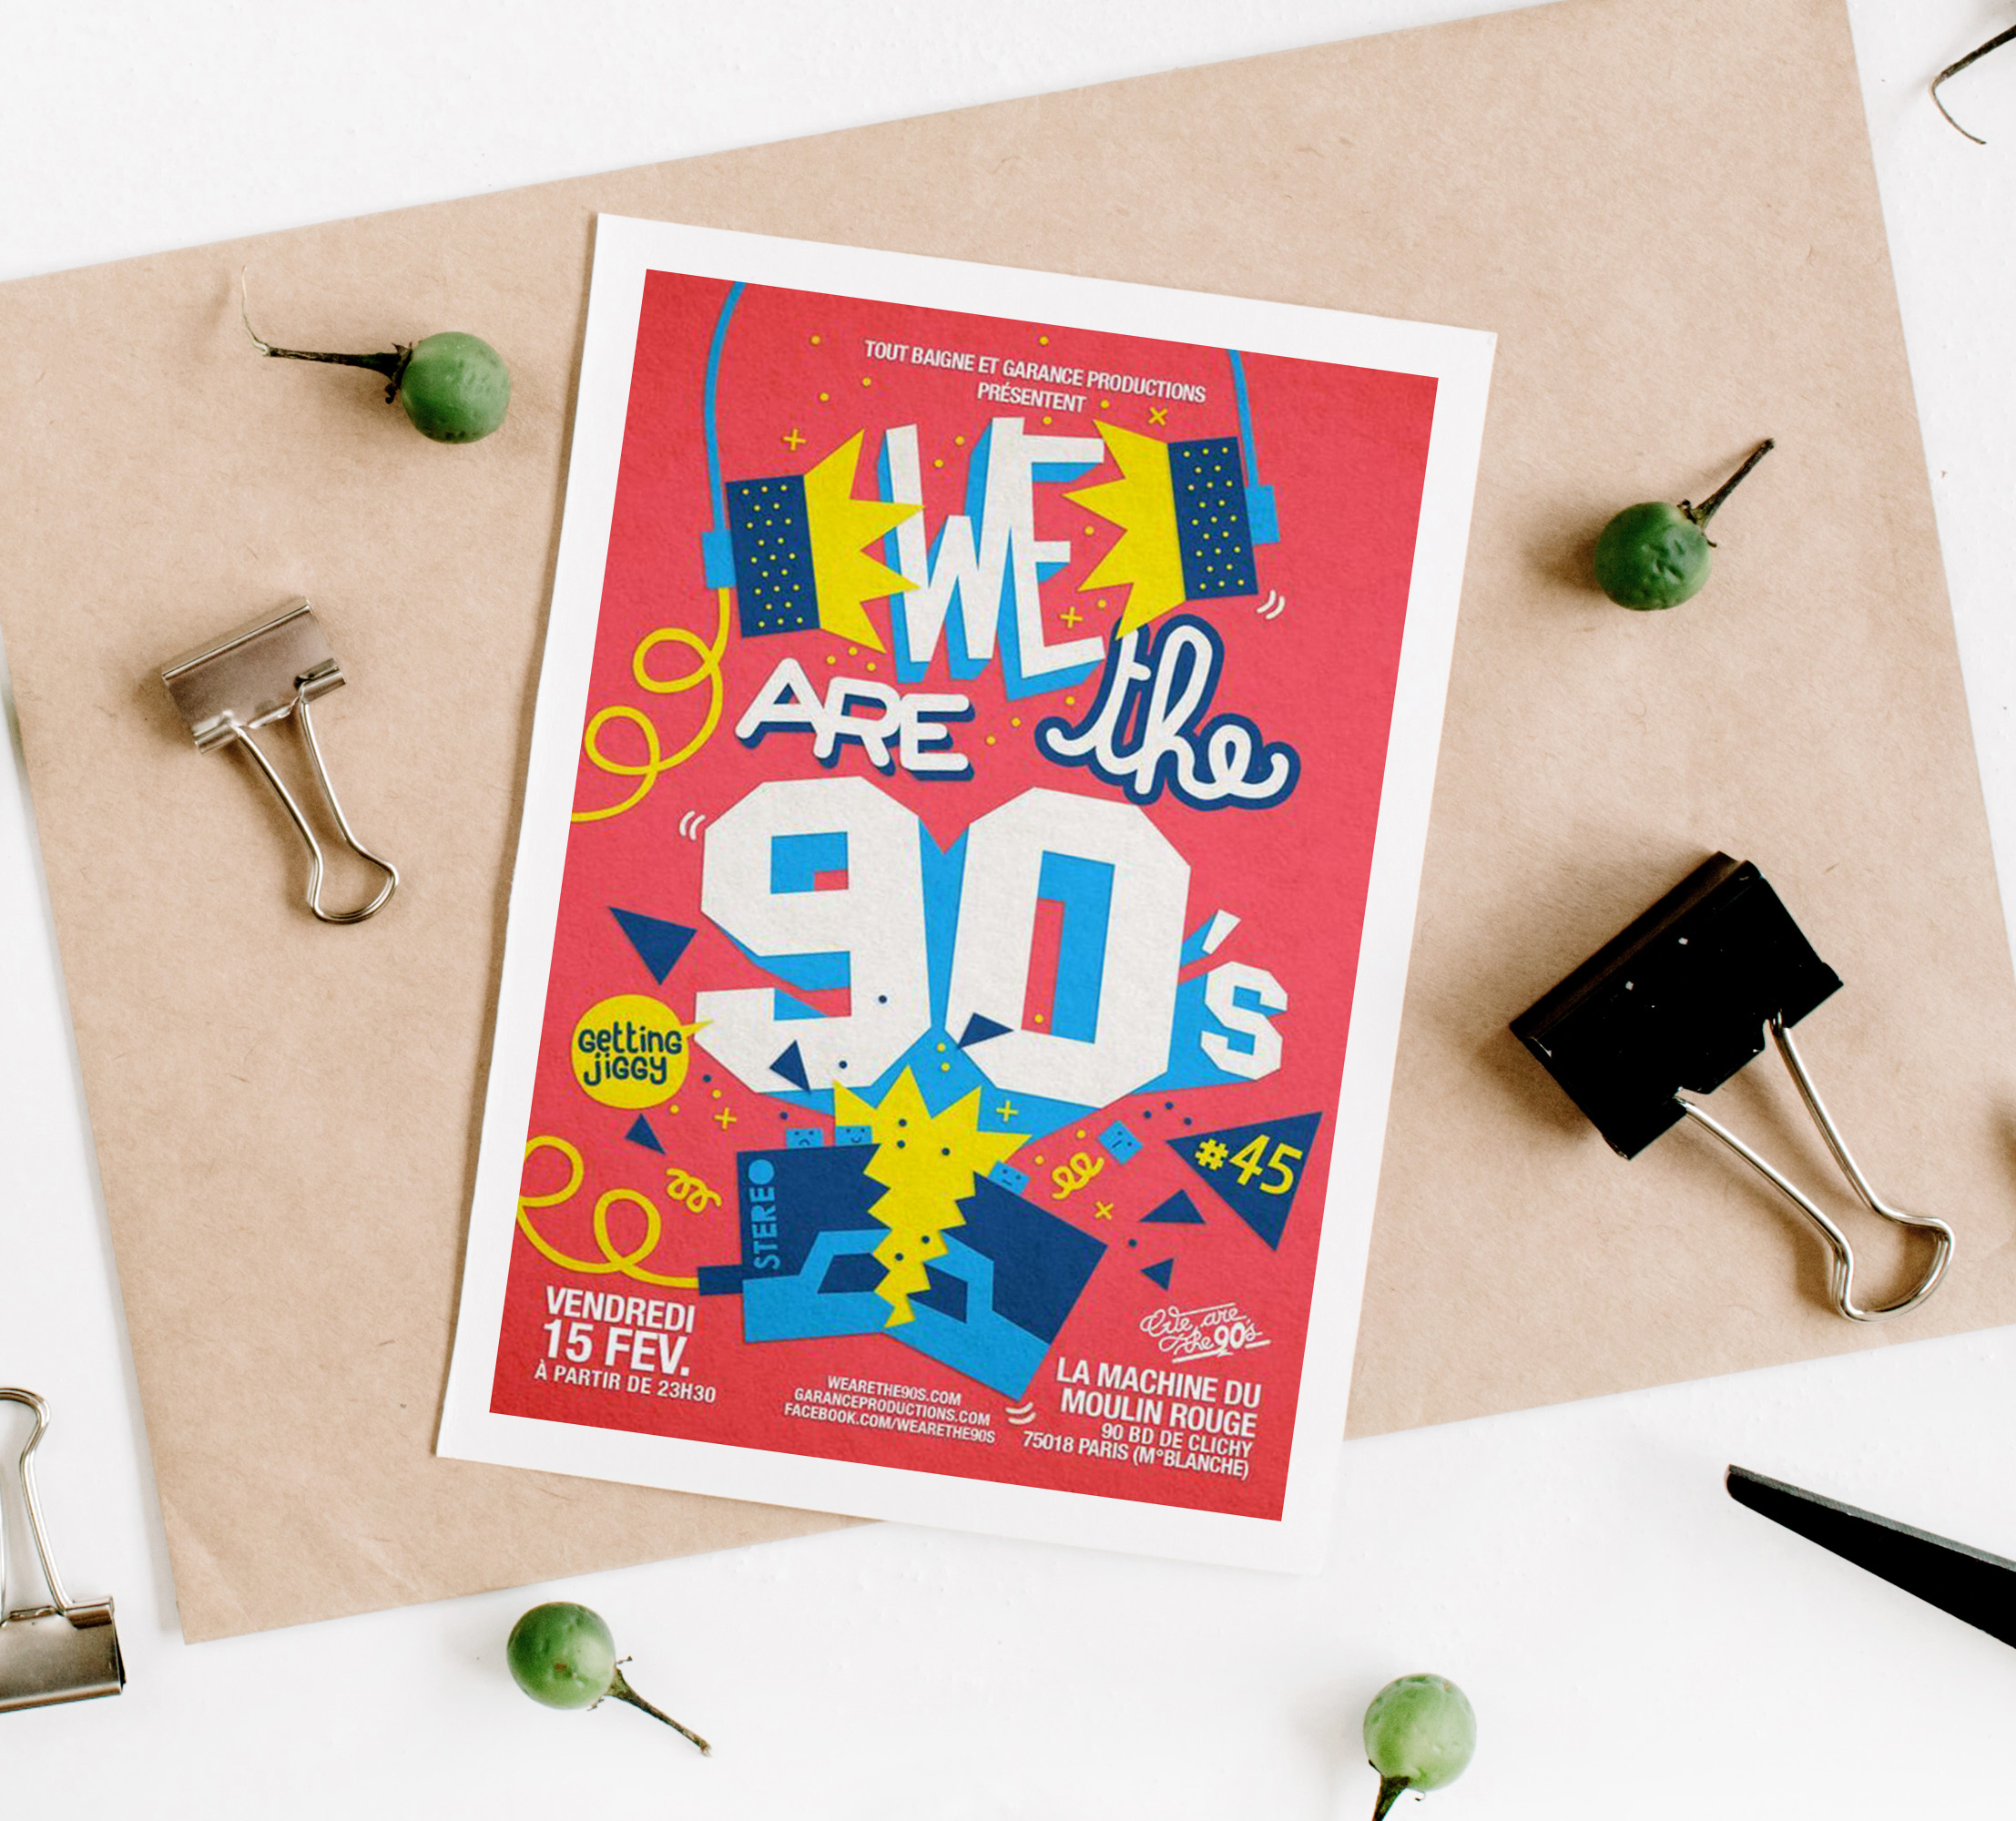 We Are The 90s Retro Event Flyer Example67